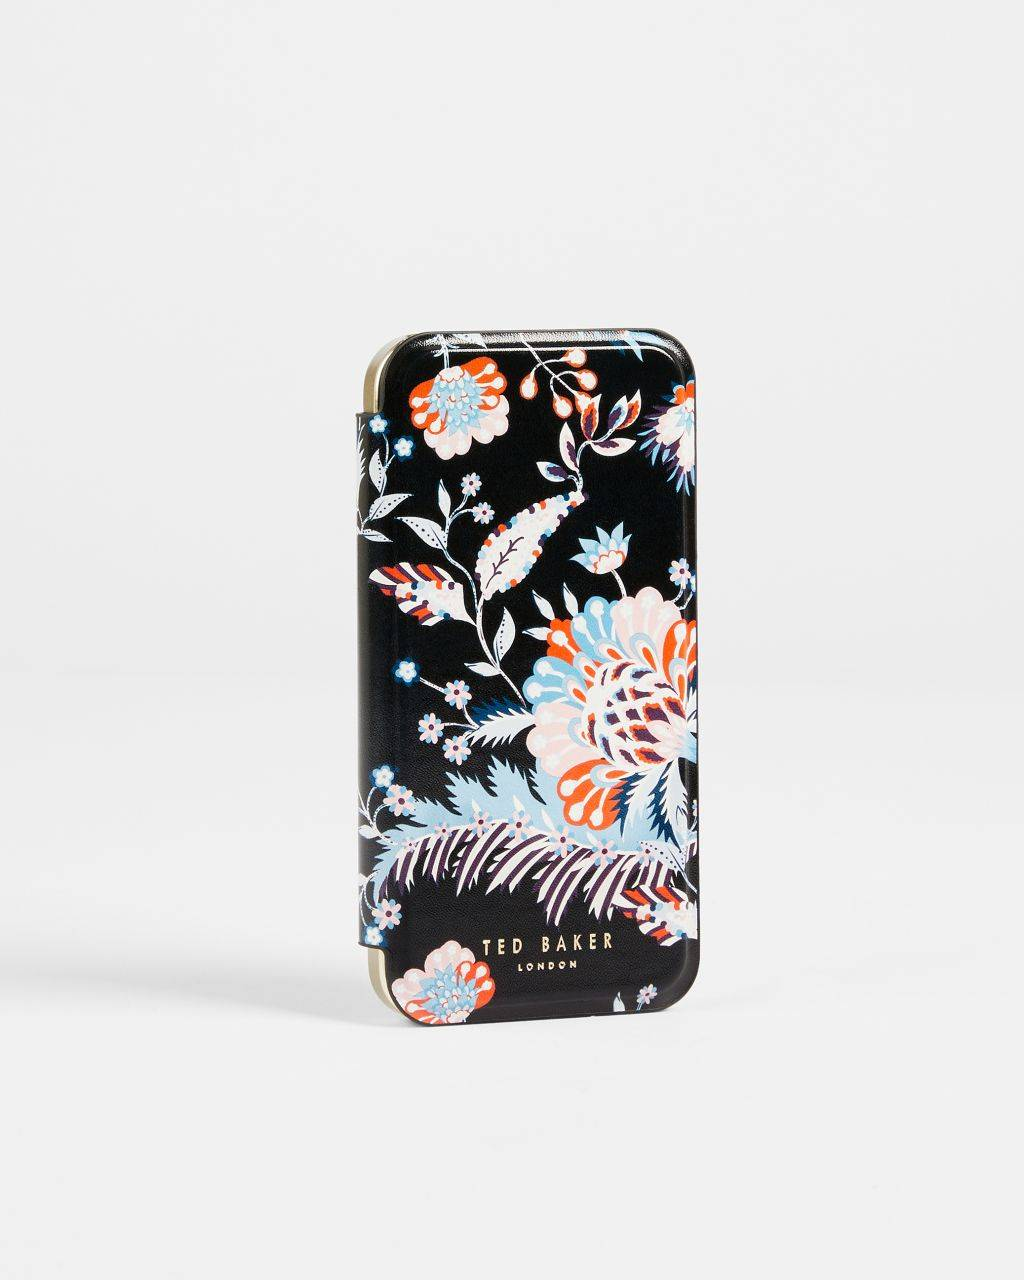 Ted Baker Spiced Up Iphone 12 / 12 Pro Mirror Case  - Black - Size: One Size